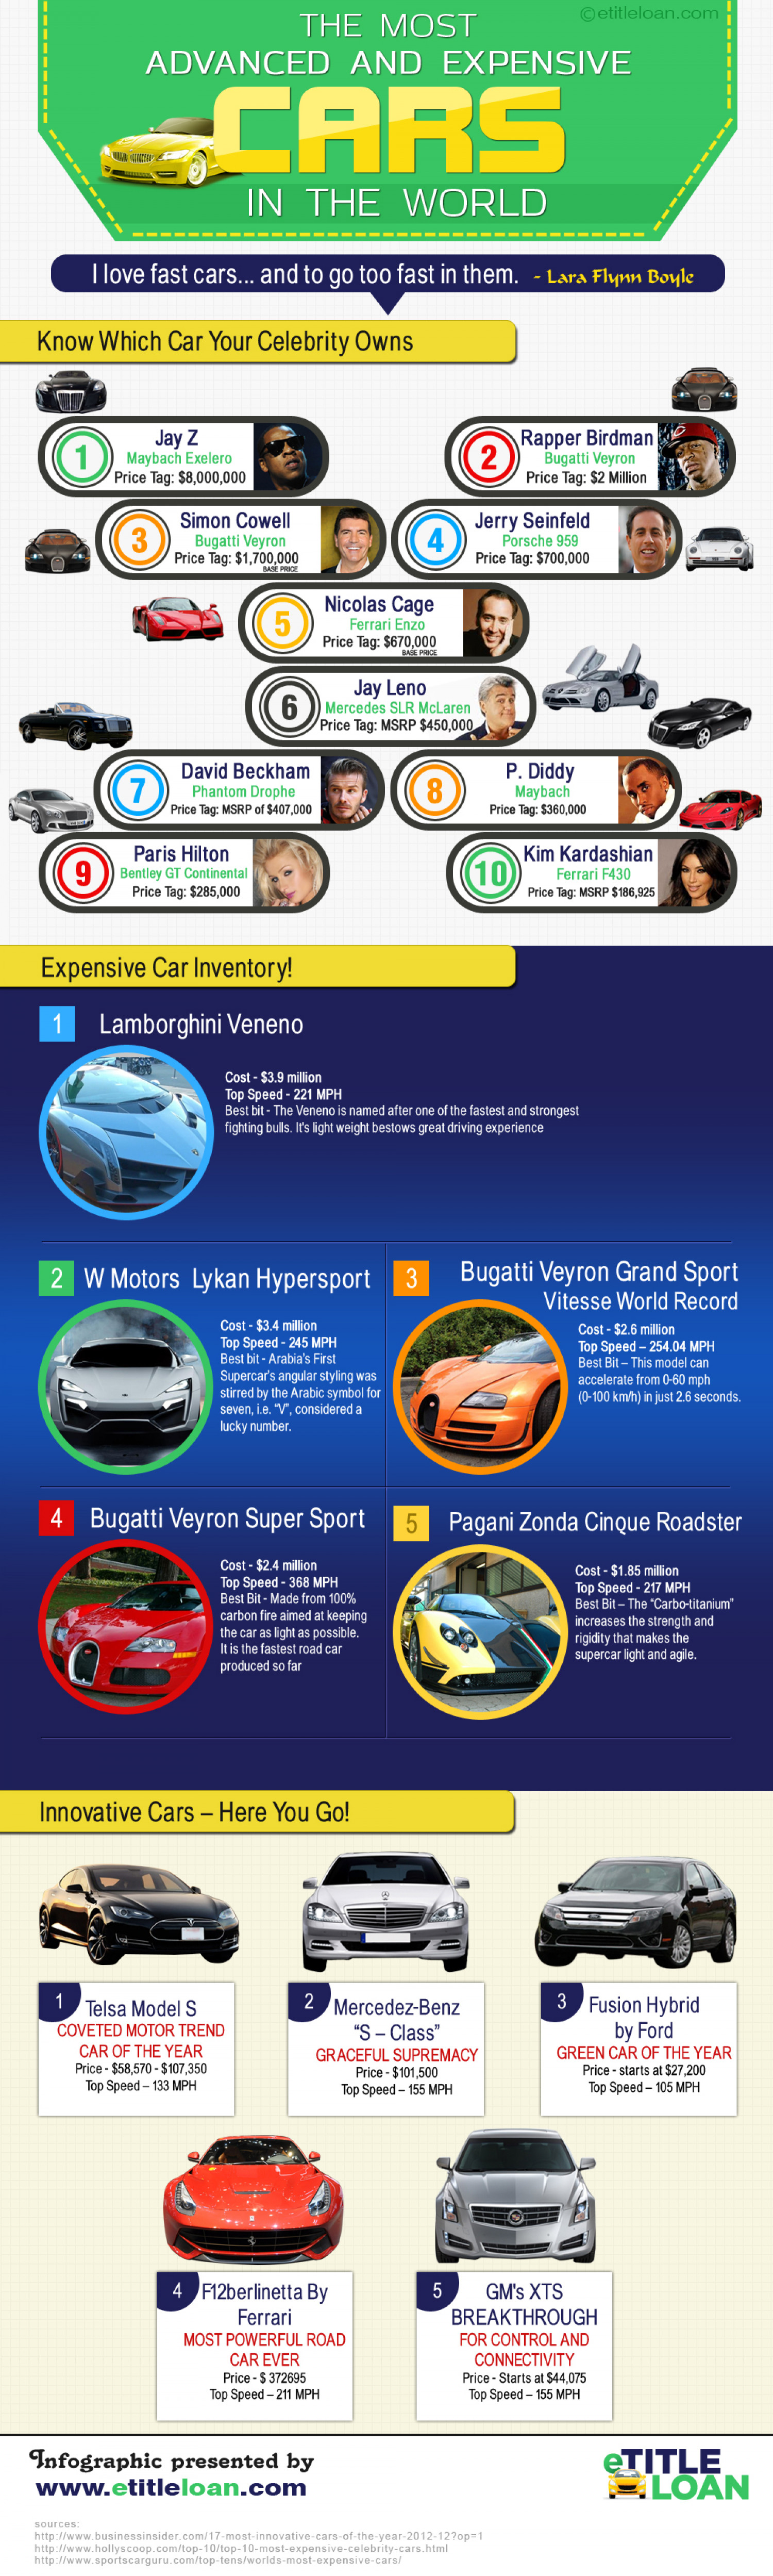 An Infographics on Most Advanced and Expensive Cars in the World Infographic